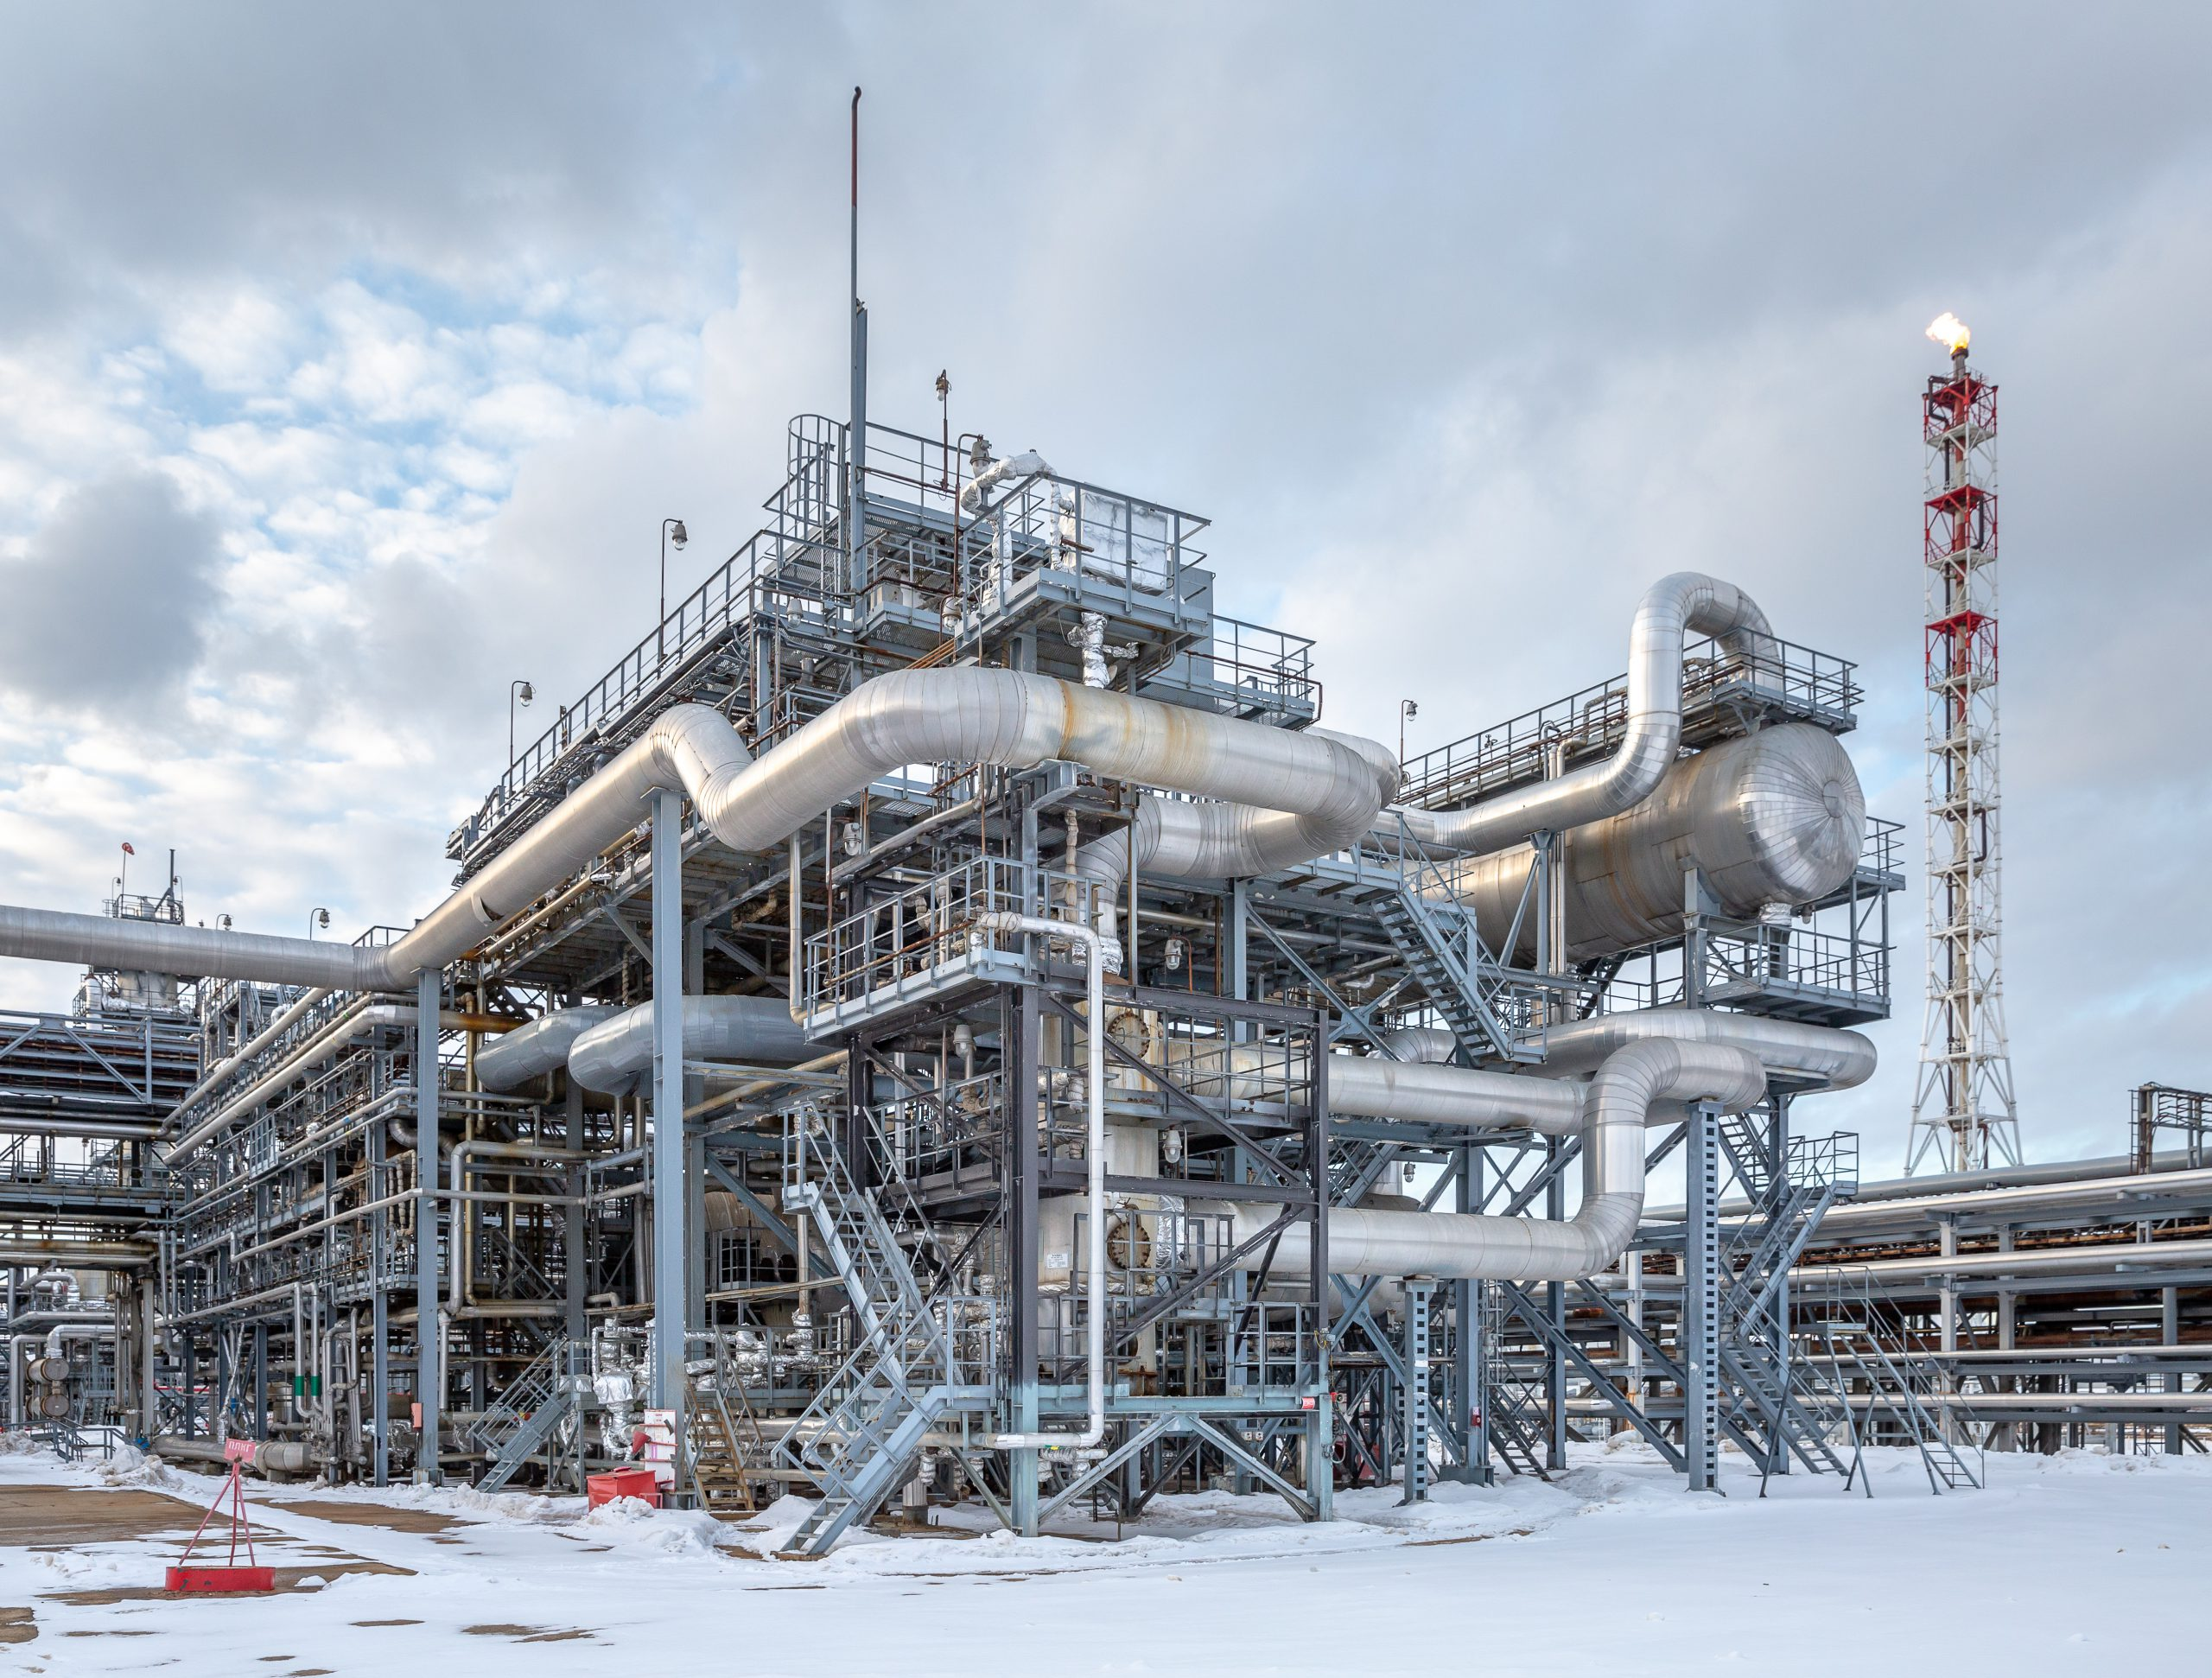 a large, modern petrochemical production in the winter, day time look